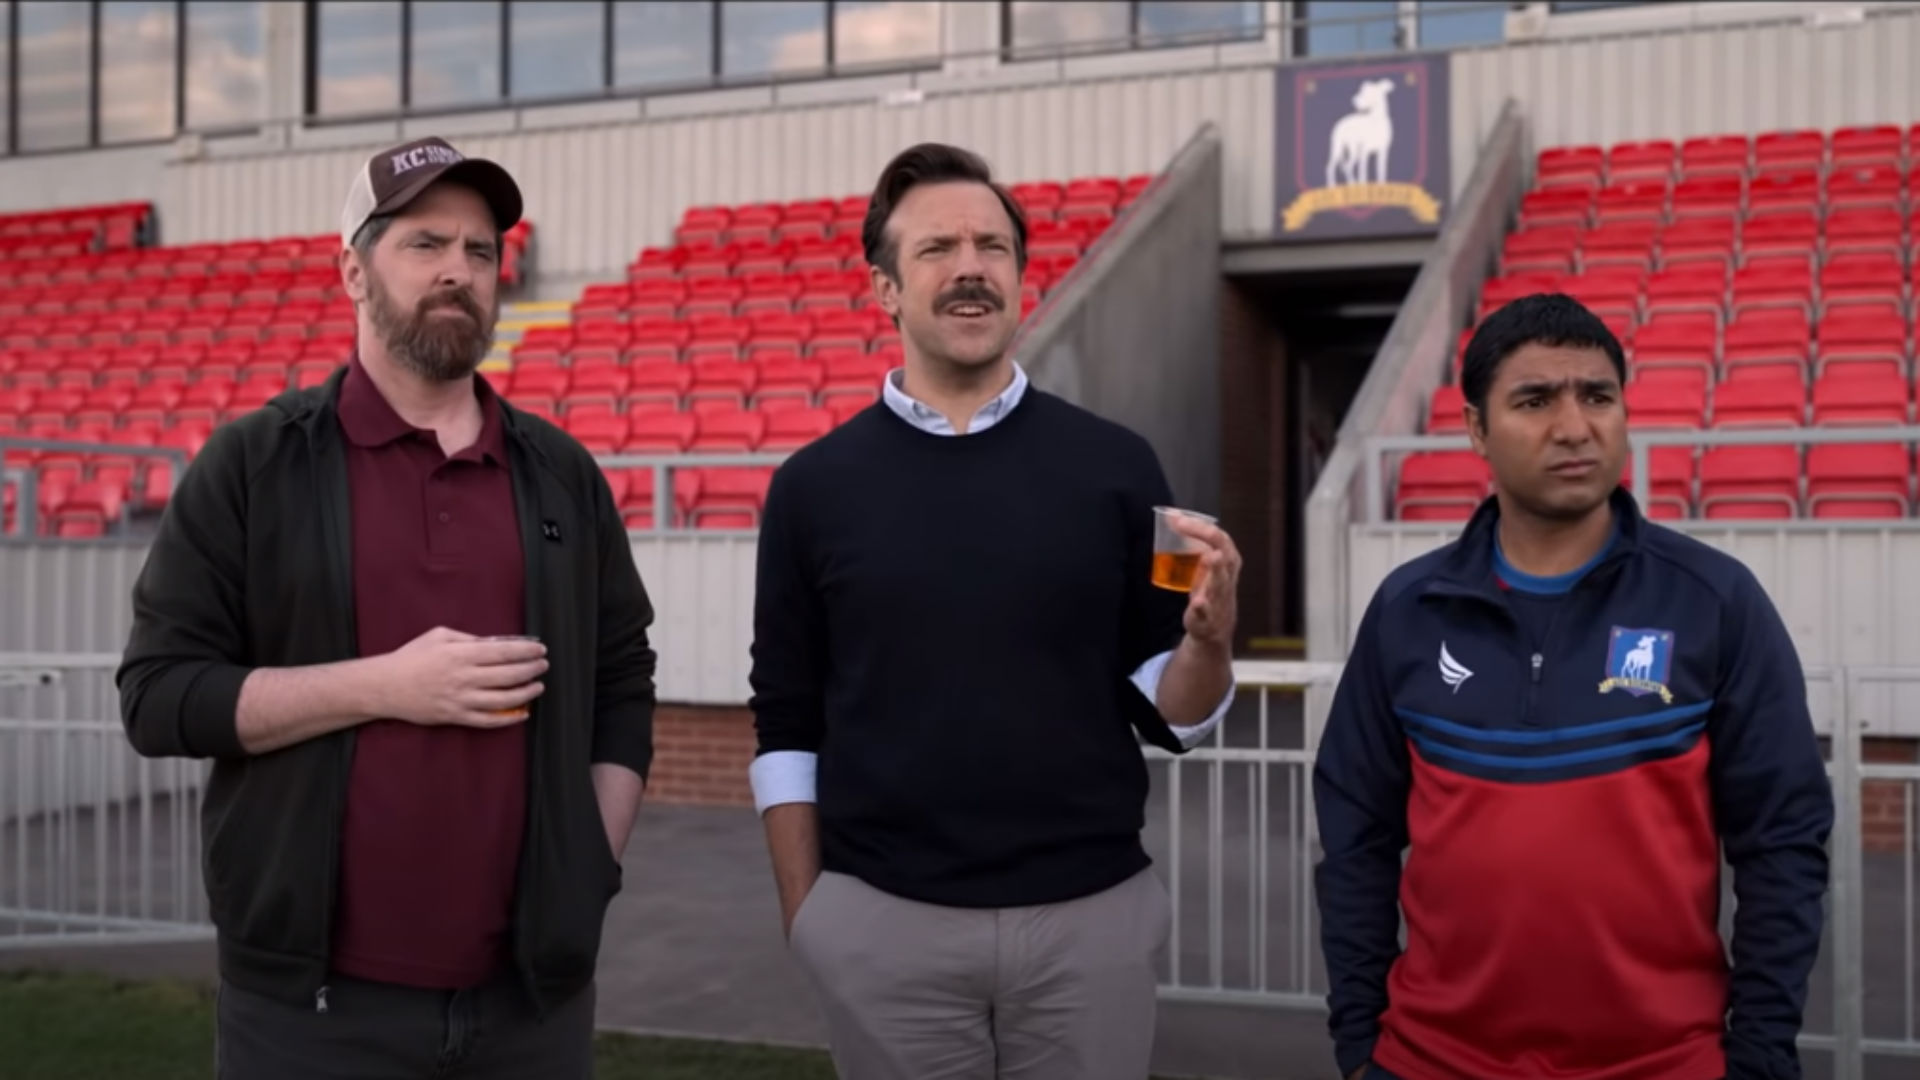 The trailer for season 2 of 'Ted Lasso' has the point of roasting the Jets